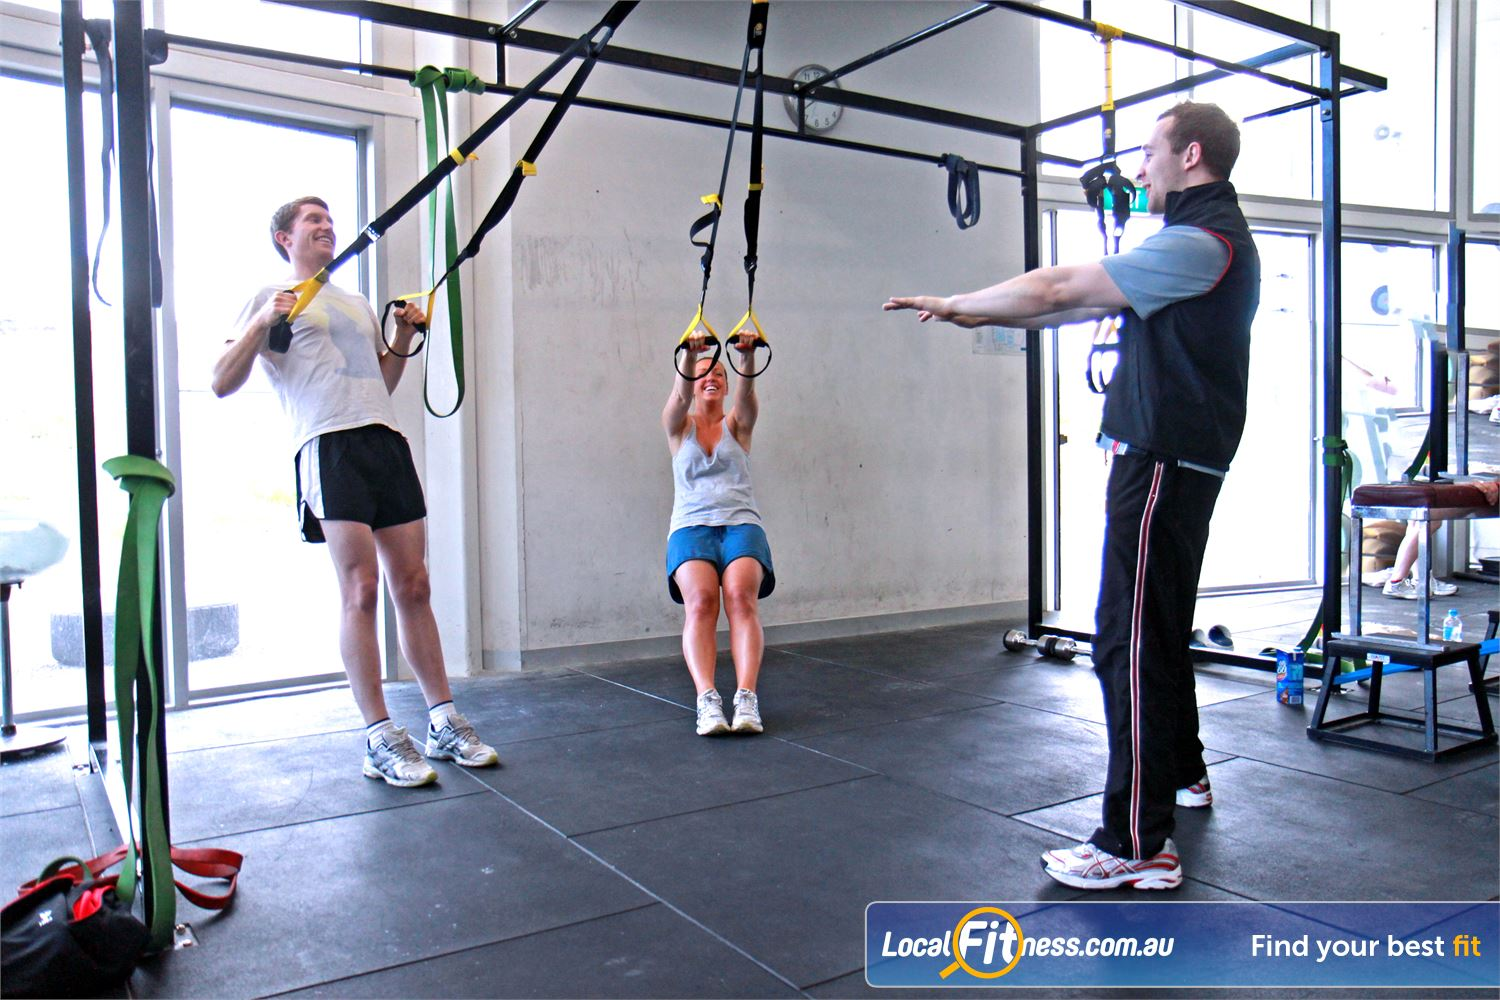 Ascot Vale Leisure Centre Near Aberfeldie Incorporate TRX suspension training in our Ascot Vale functional training area.